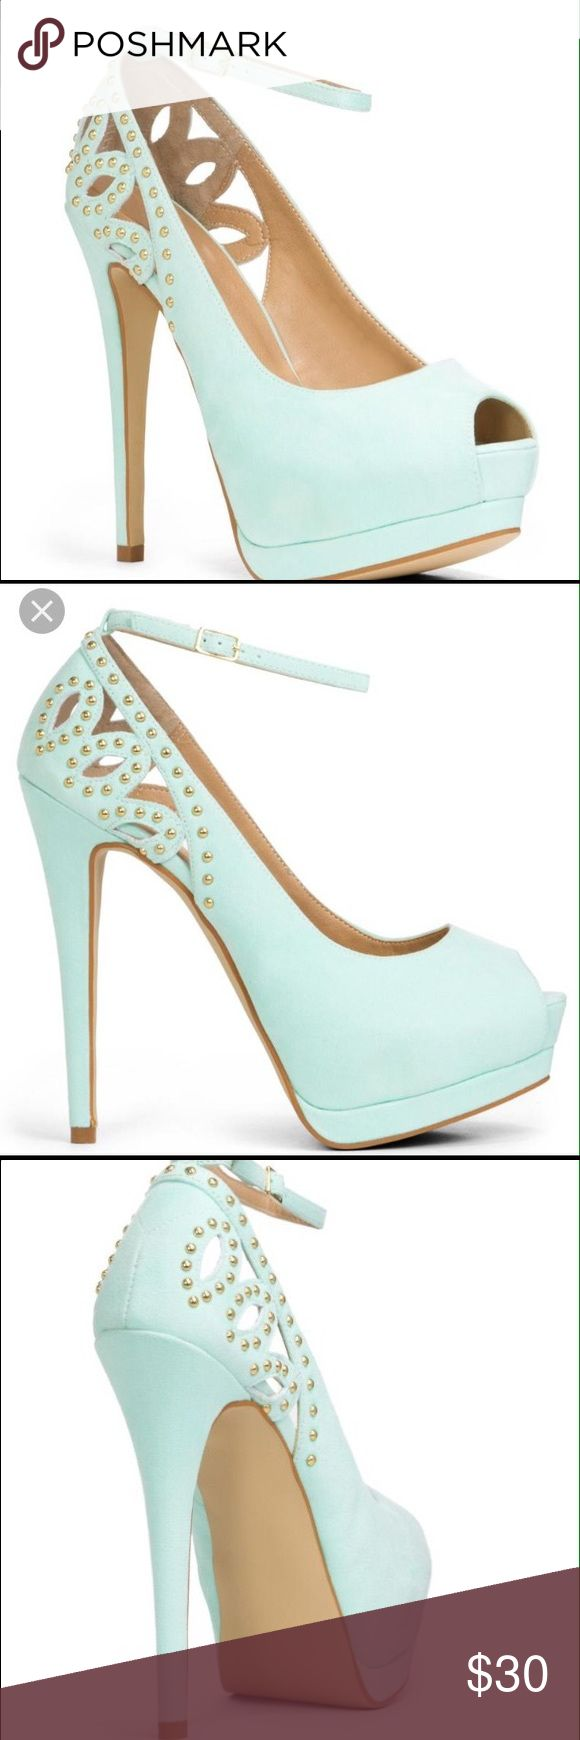 Classy and elegant mint pumps Worn very few times but in great condition JustFab Shoes Platforms